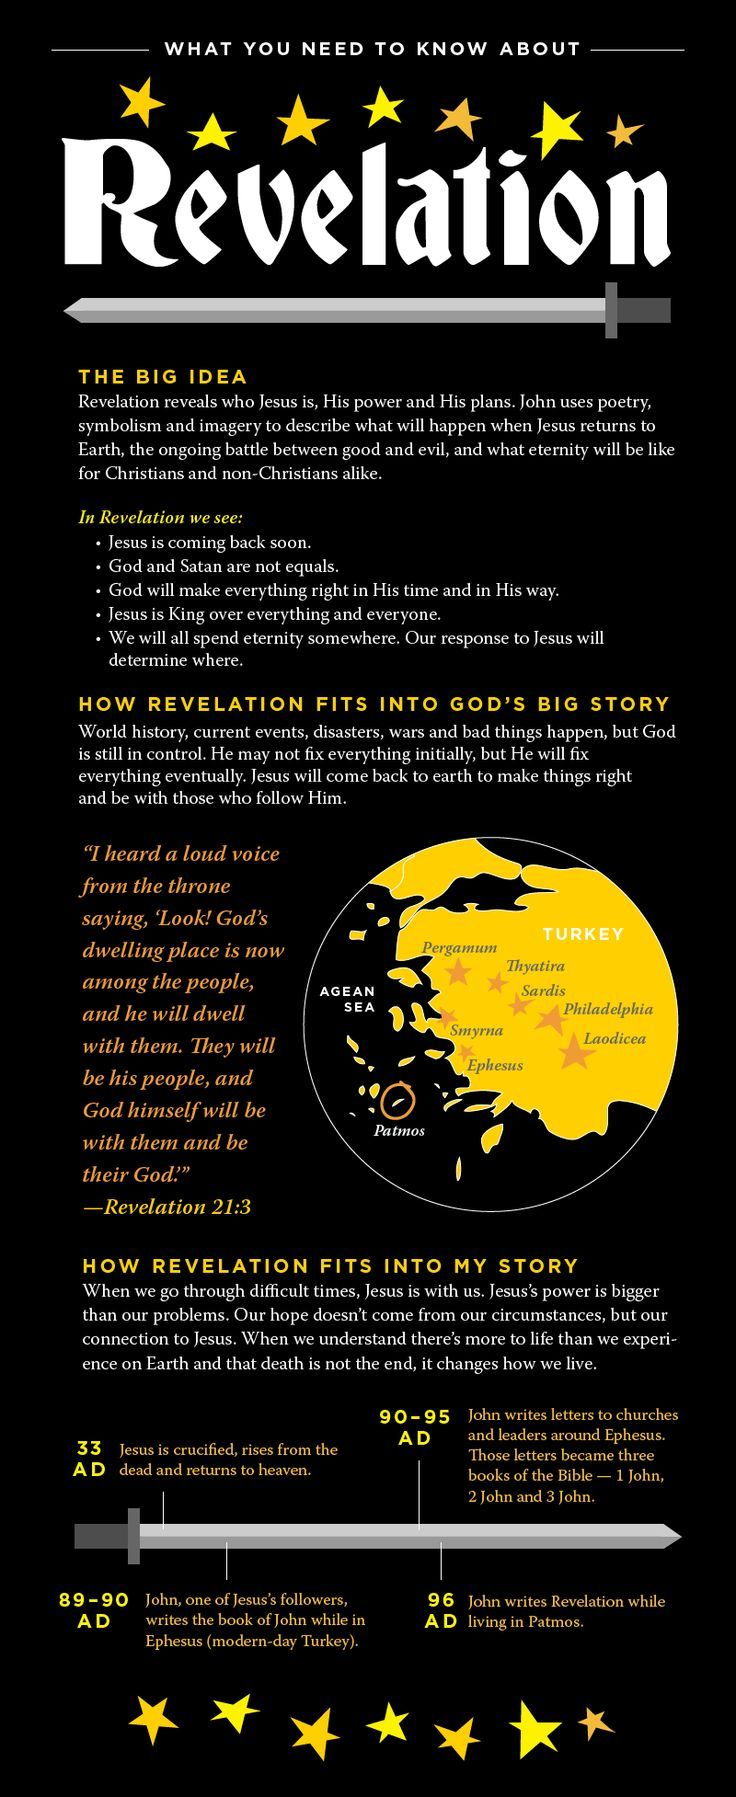 Bible Need To Know: Revelation | NewSpring Church bible studies bible study plans